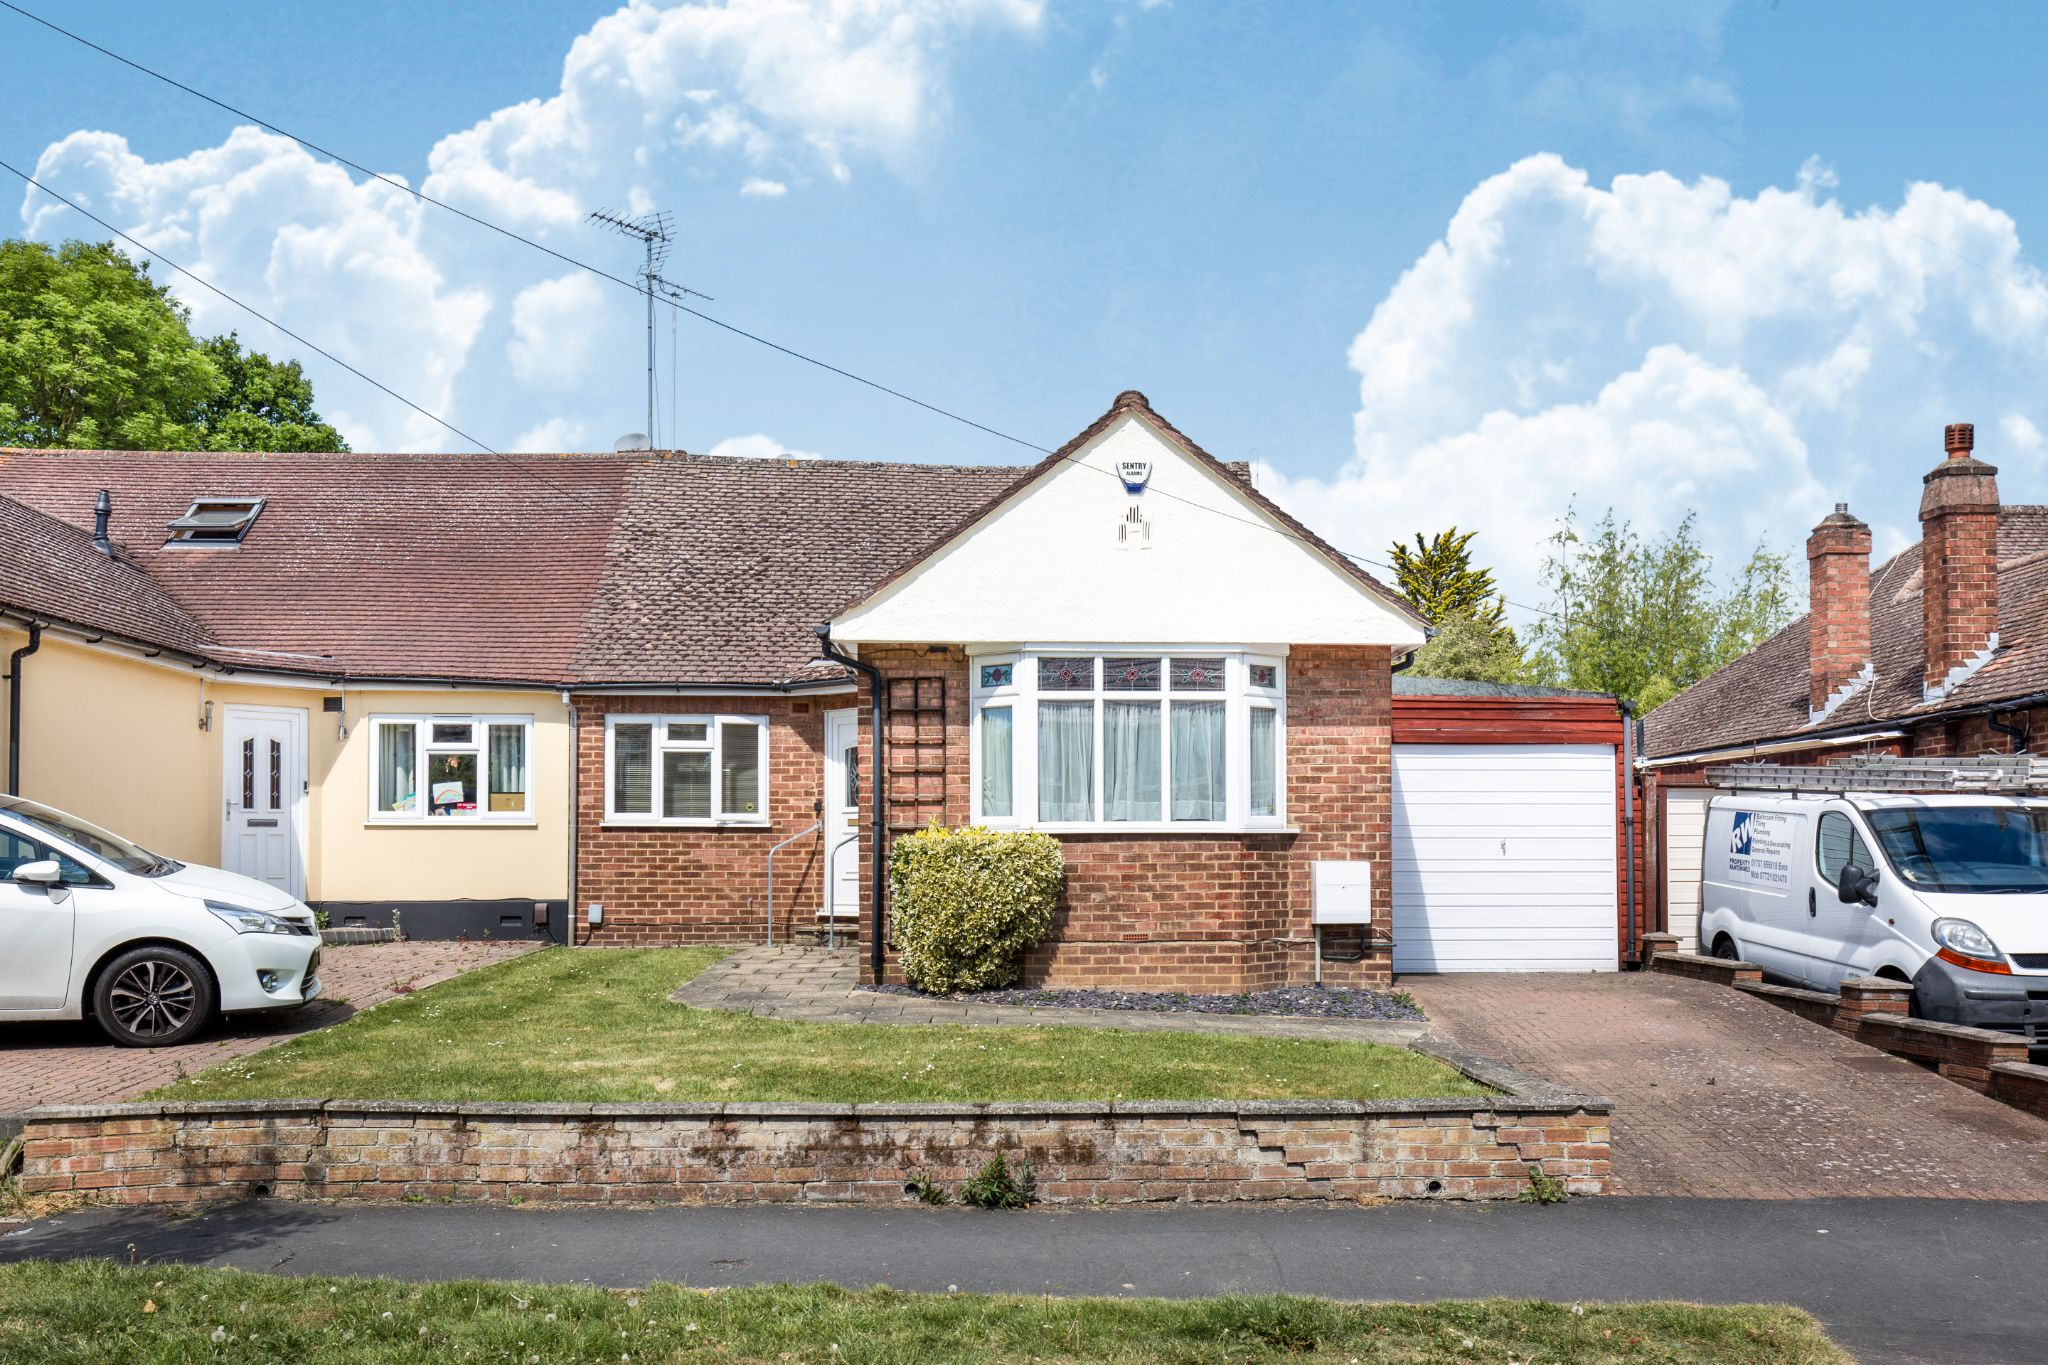 4 bedroom semi-detached bungalow For Sale in Potters Bar - Property photograph